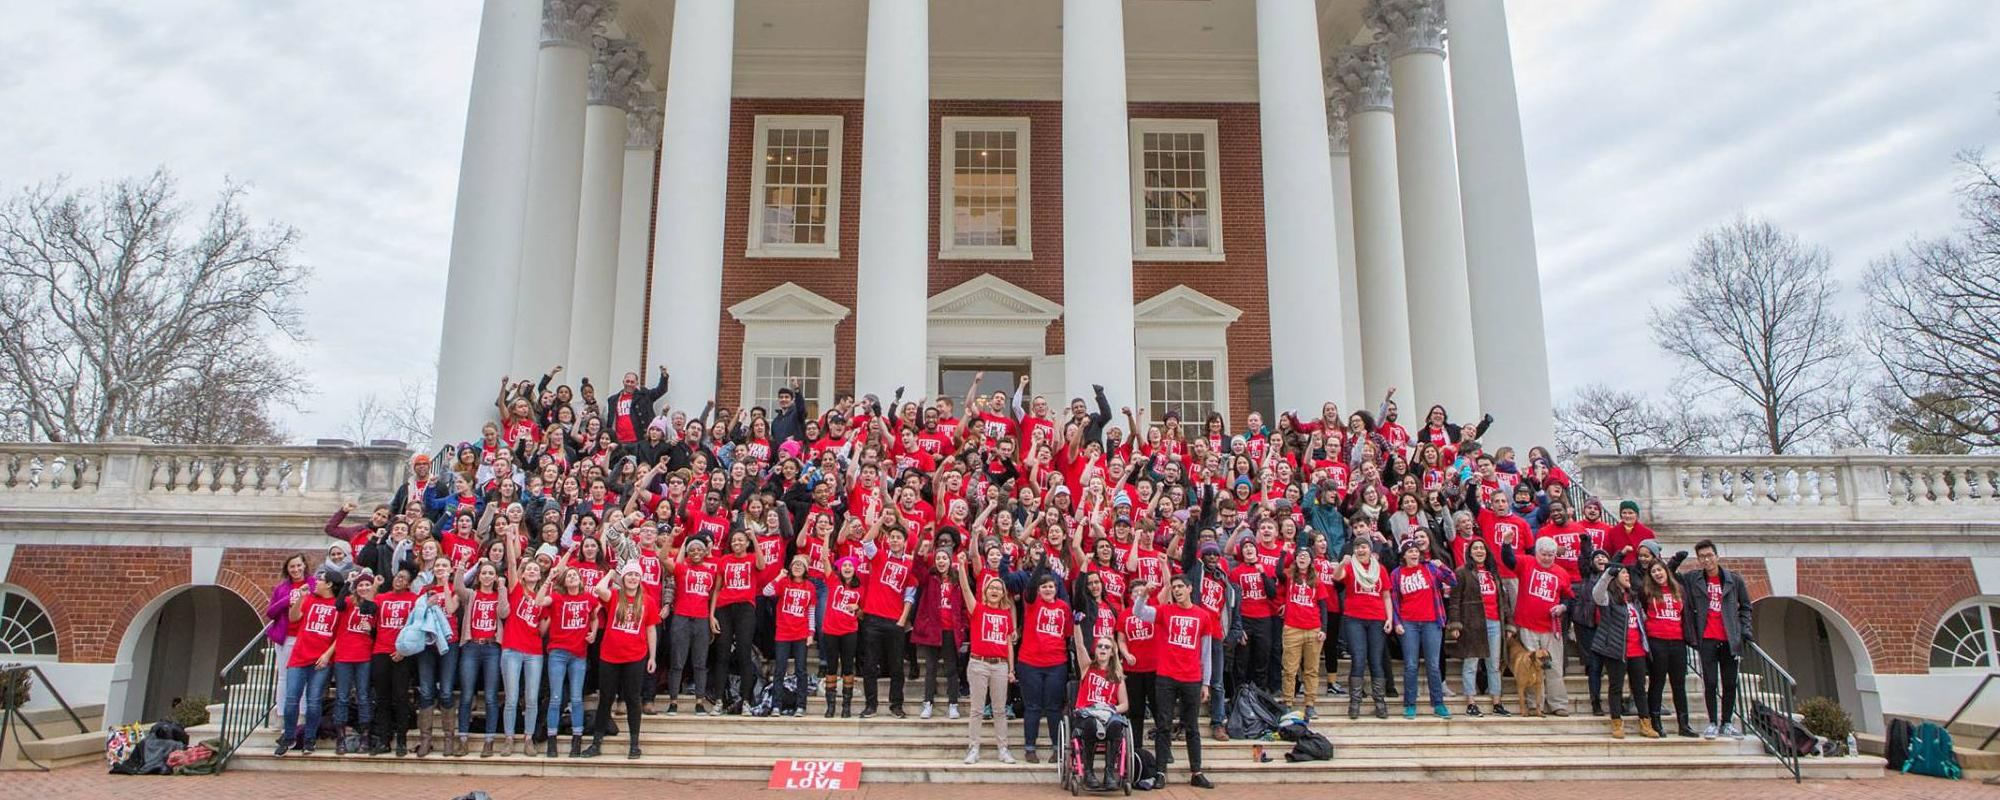 Students on the steps of the Rotunda celebrating Love is Love